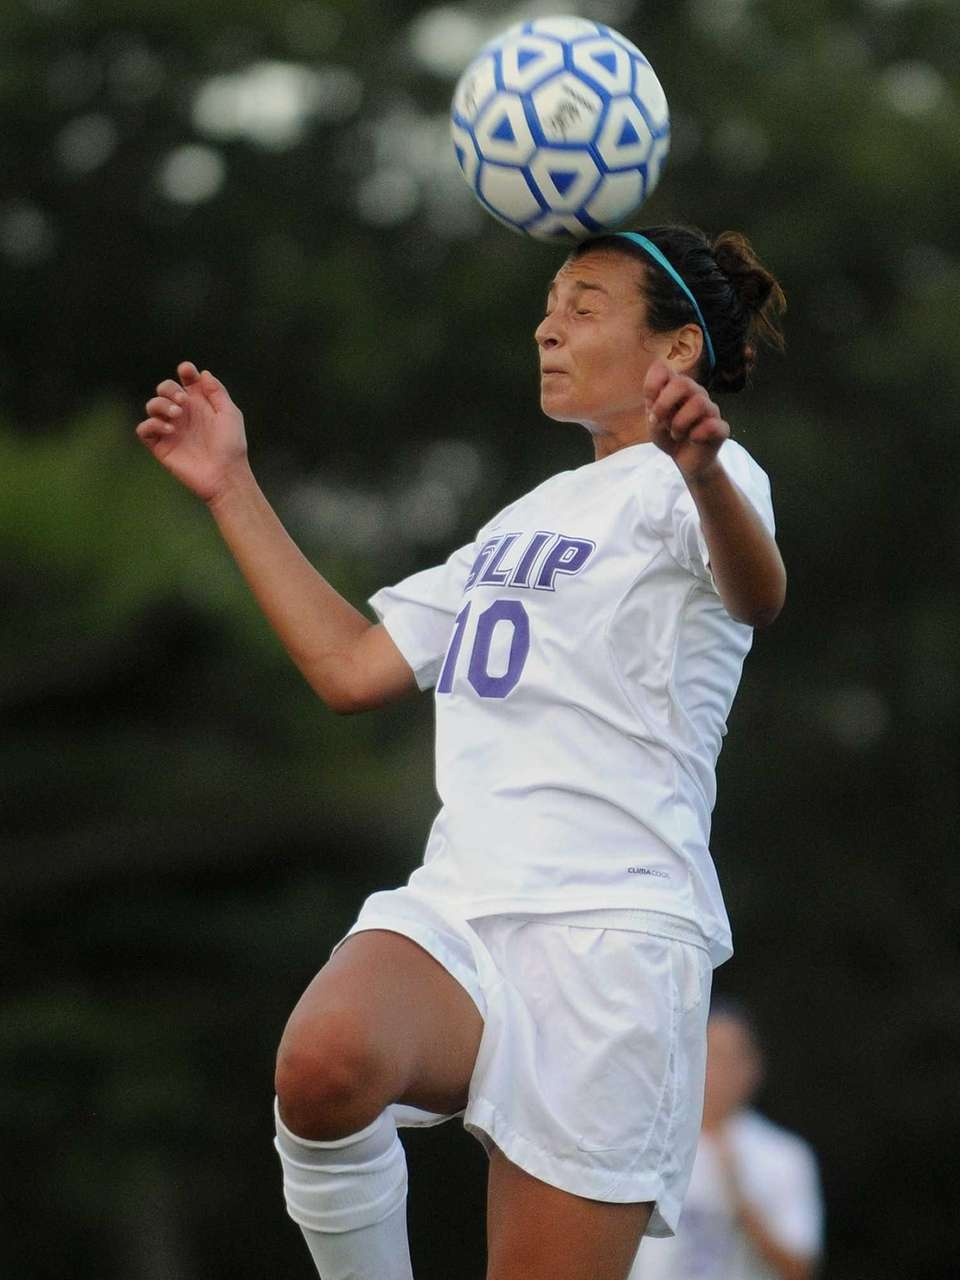 Islip's Morgan Santoro heads the ball in the